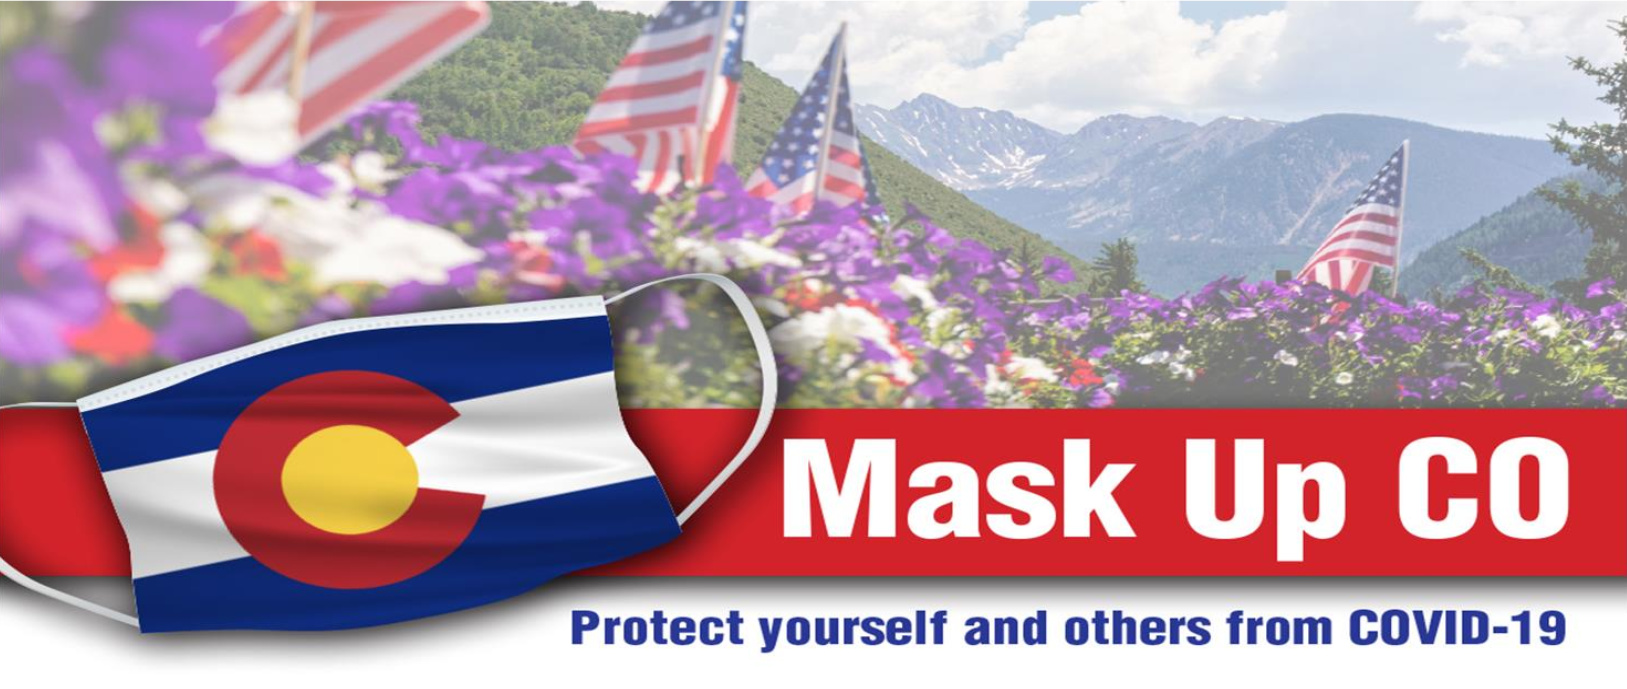 Facial mask with CO state flag imprinted on it with mountains in the background.